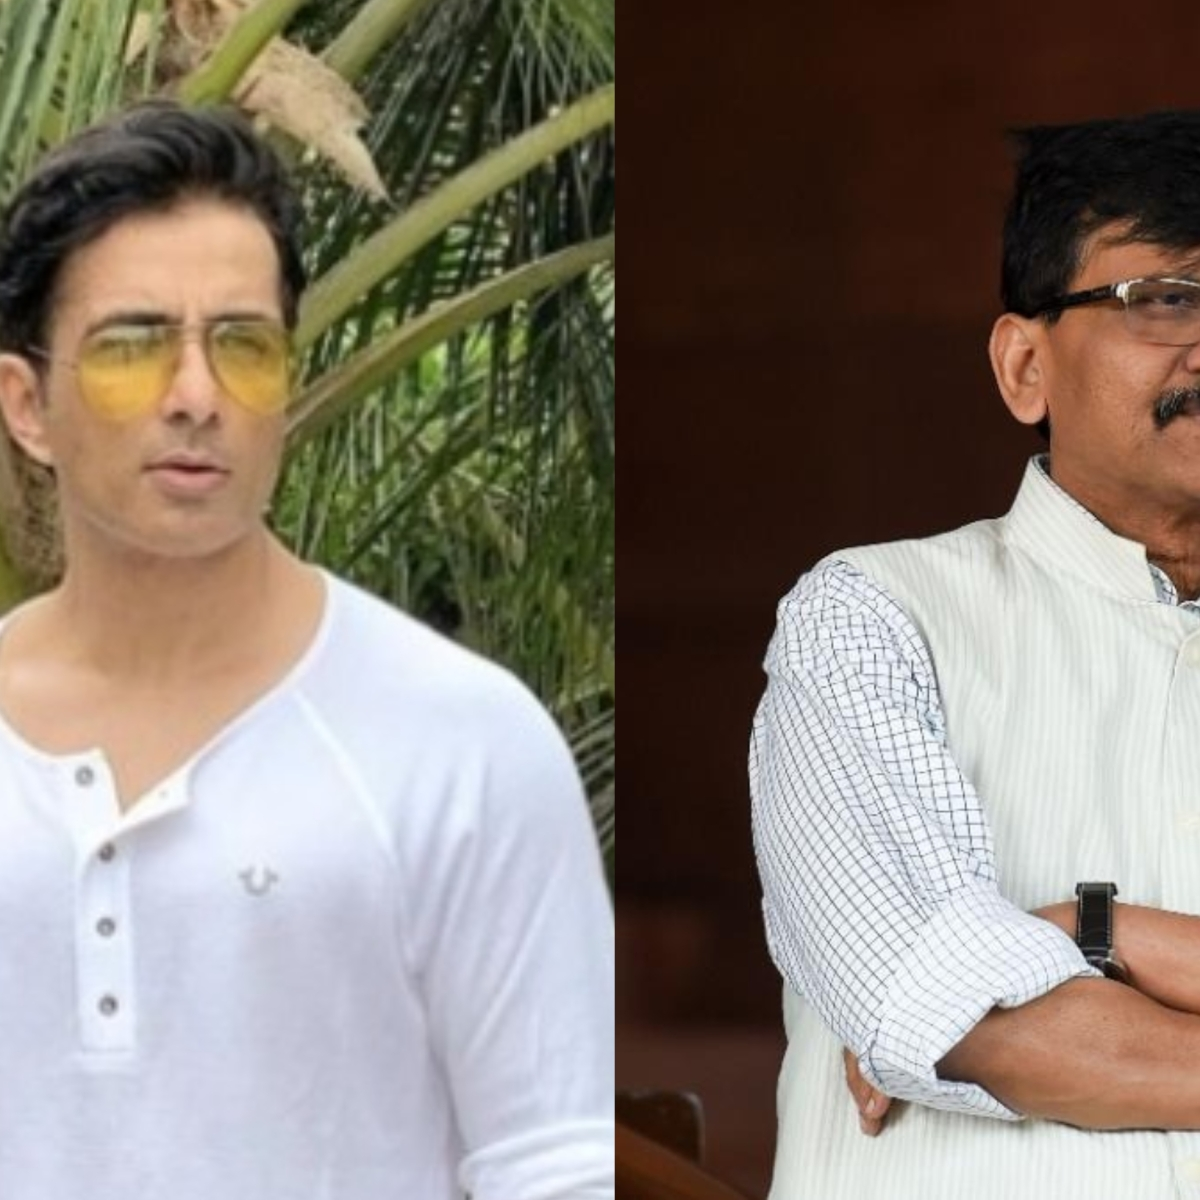 Migrant Messiah or BJP Trojan Horse: All you need to know about Sonu Sood vs Sanjay Raut